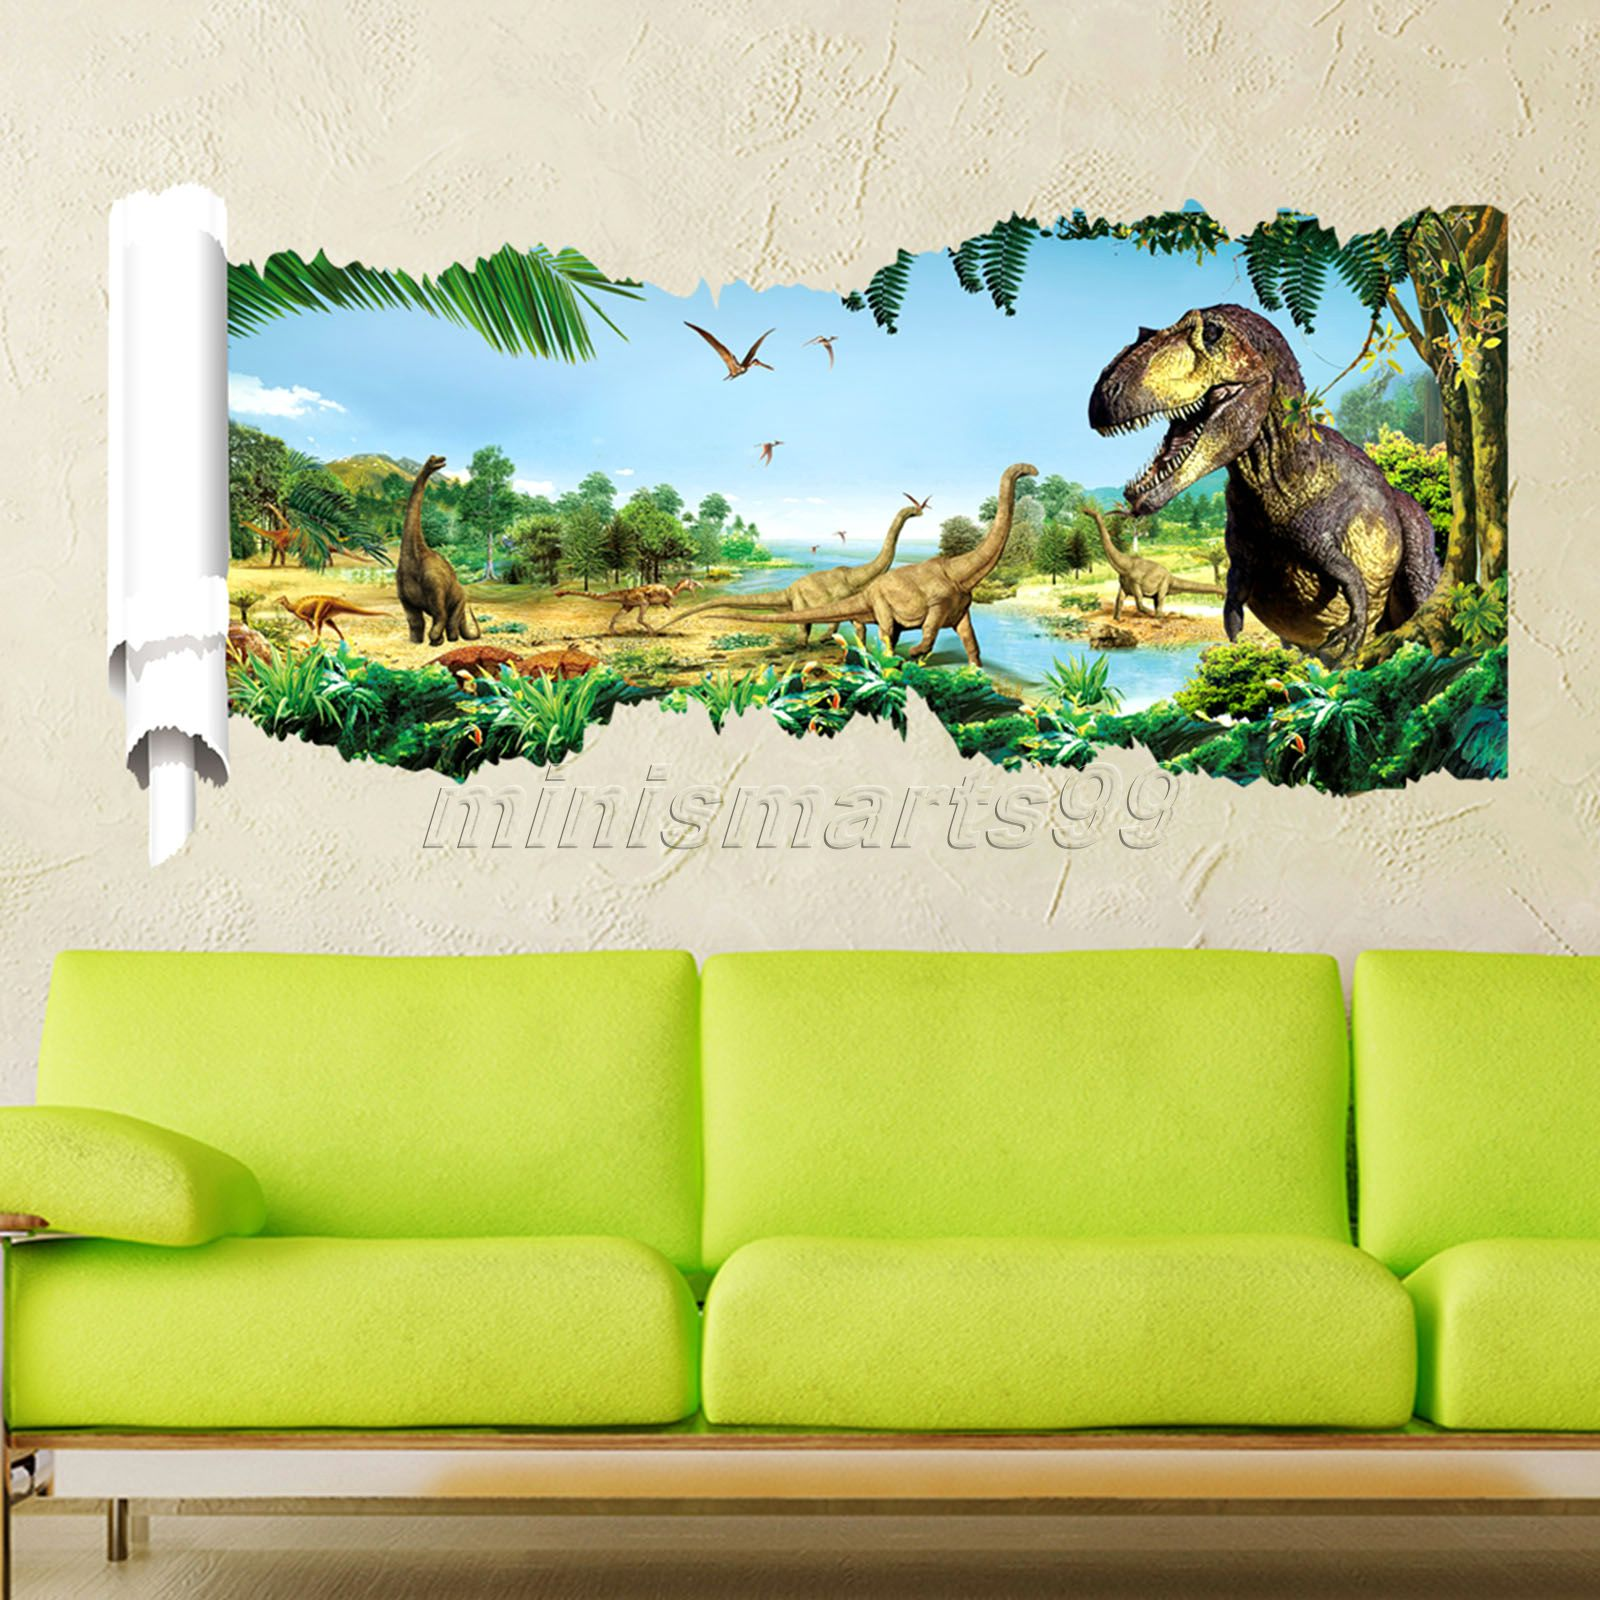 3d Through Dinosaur Wall Stickers Decals for Kids Rooms ...